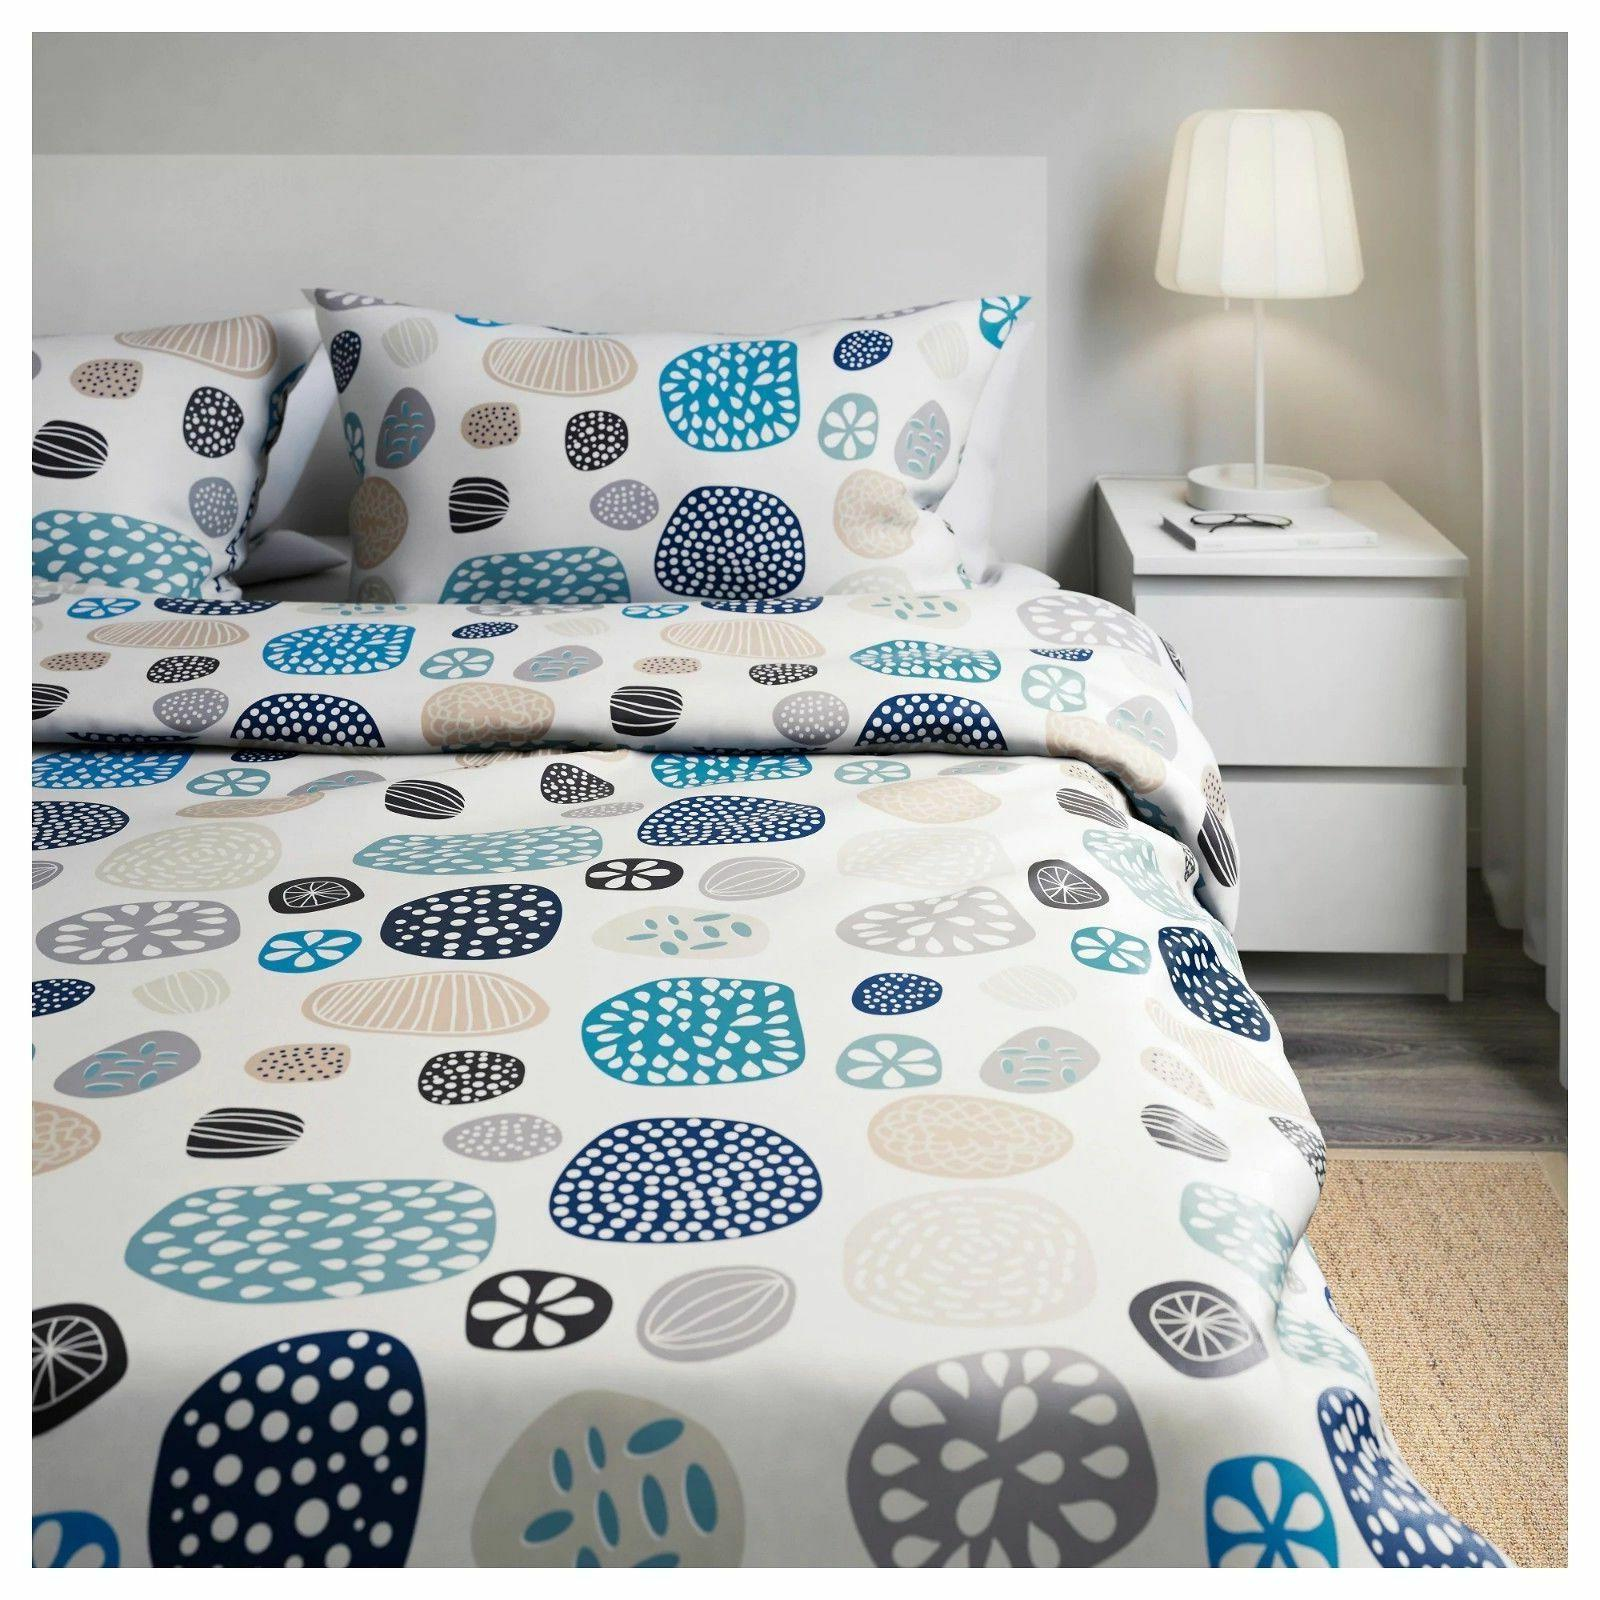 Ikea Duvet Covers New Ikea Ringkrage Full Queen Duvet Cover 2